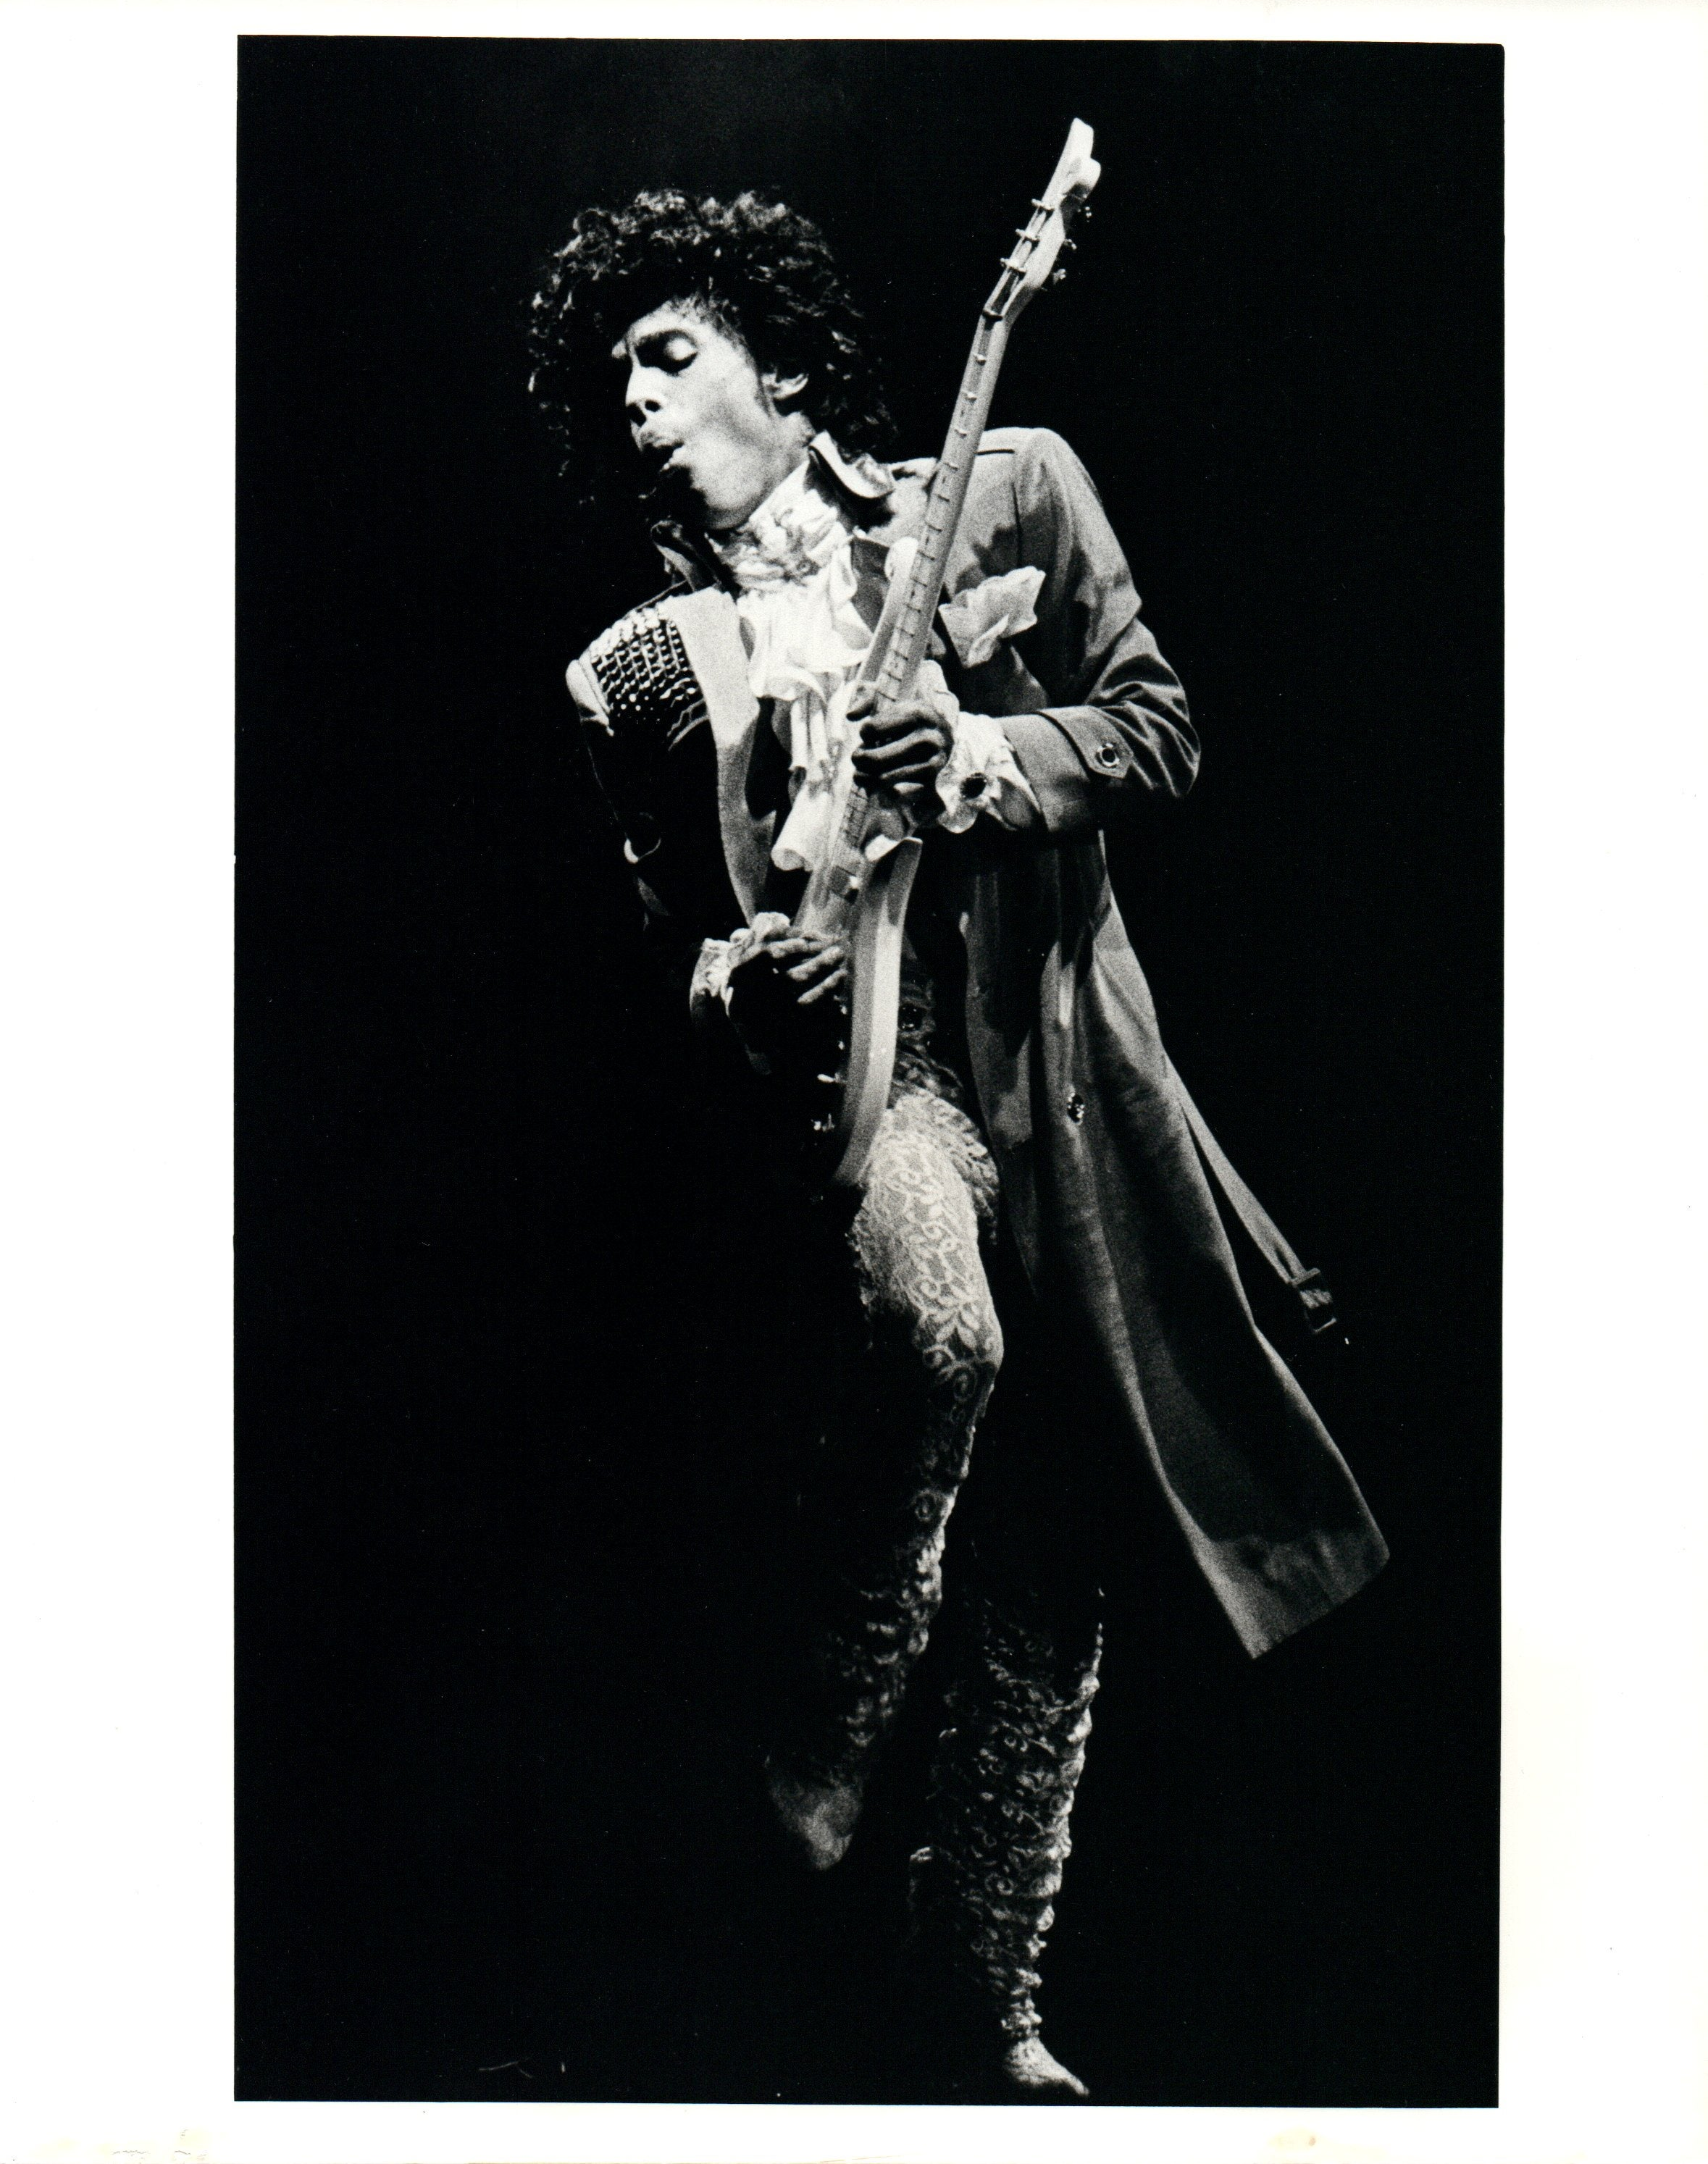 Ben de soto prince rocking out with guitar vintage original photograph